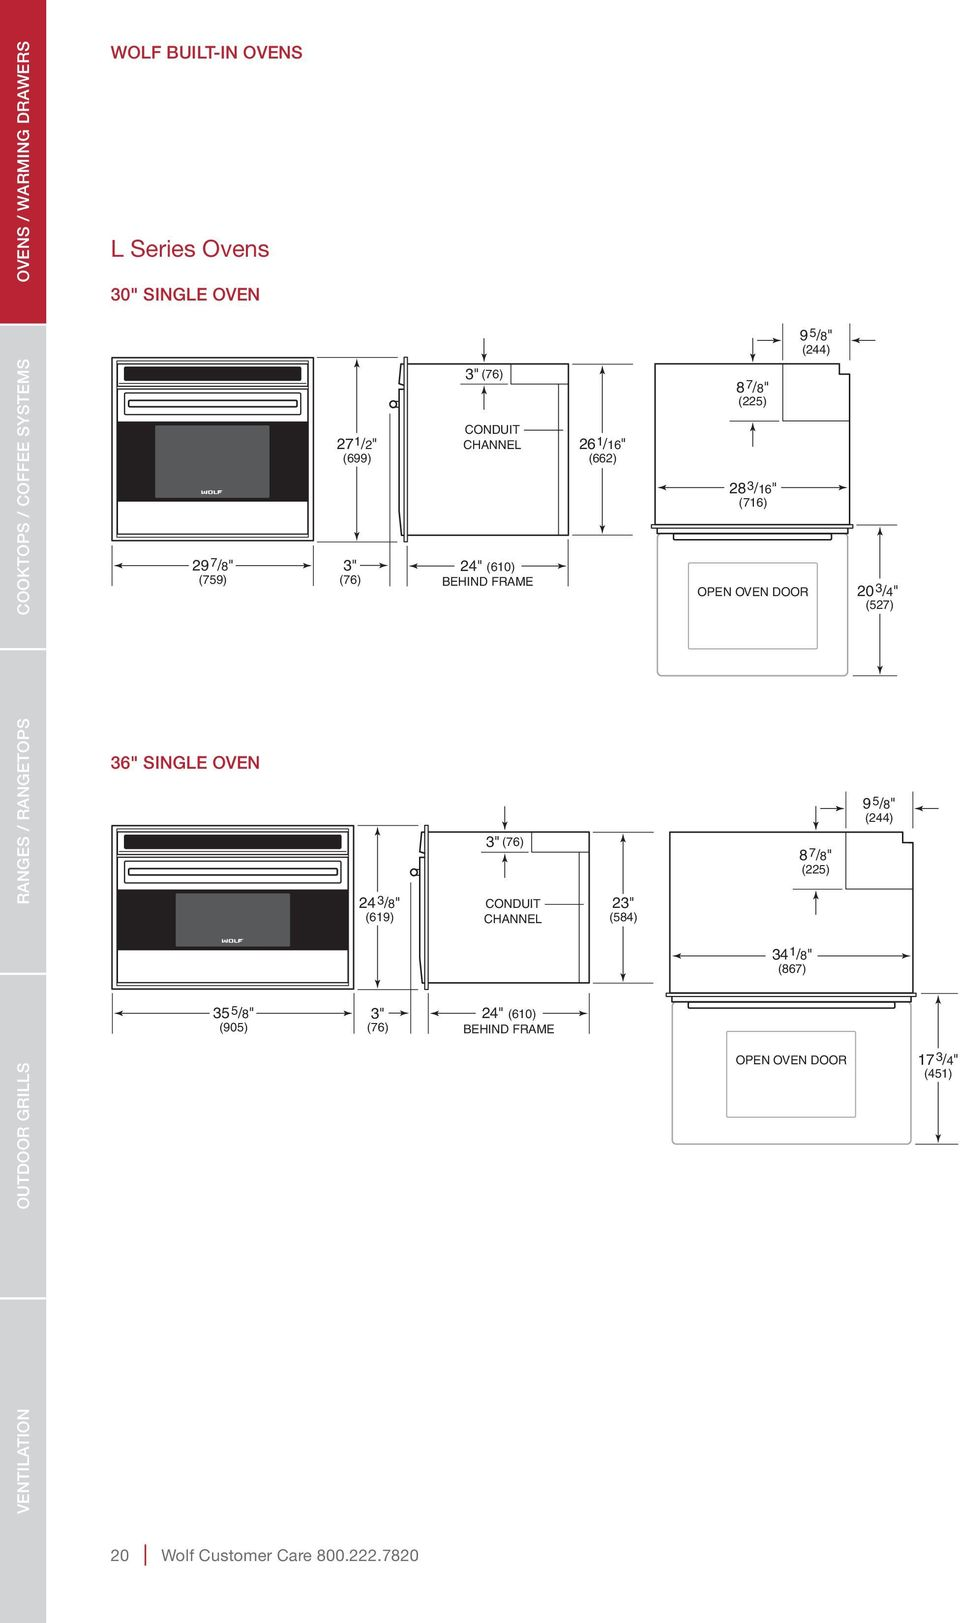 "(610) BEHIND FRAME 3"" (76) CONDUIT CHANNEL 24"" (610) BEHIND FRAME 26 1 /16"" (662) 23"" (584) 8 7 /8"" (225) 28 3 /16"" (716) OPEN OVEN"